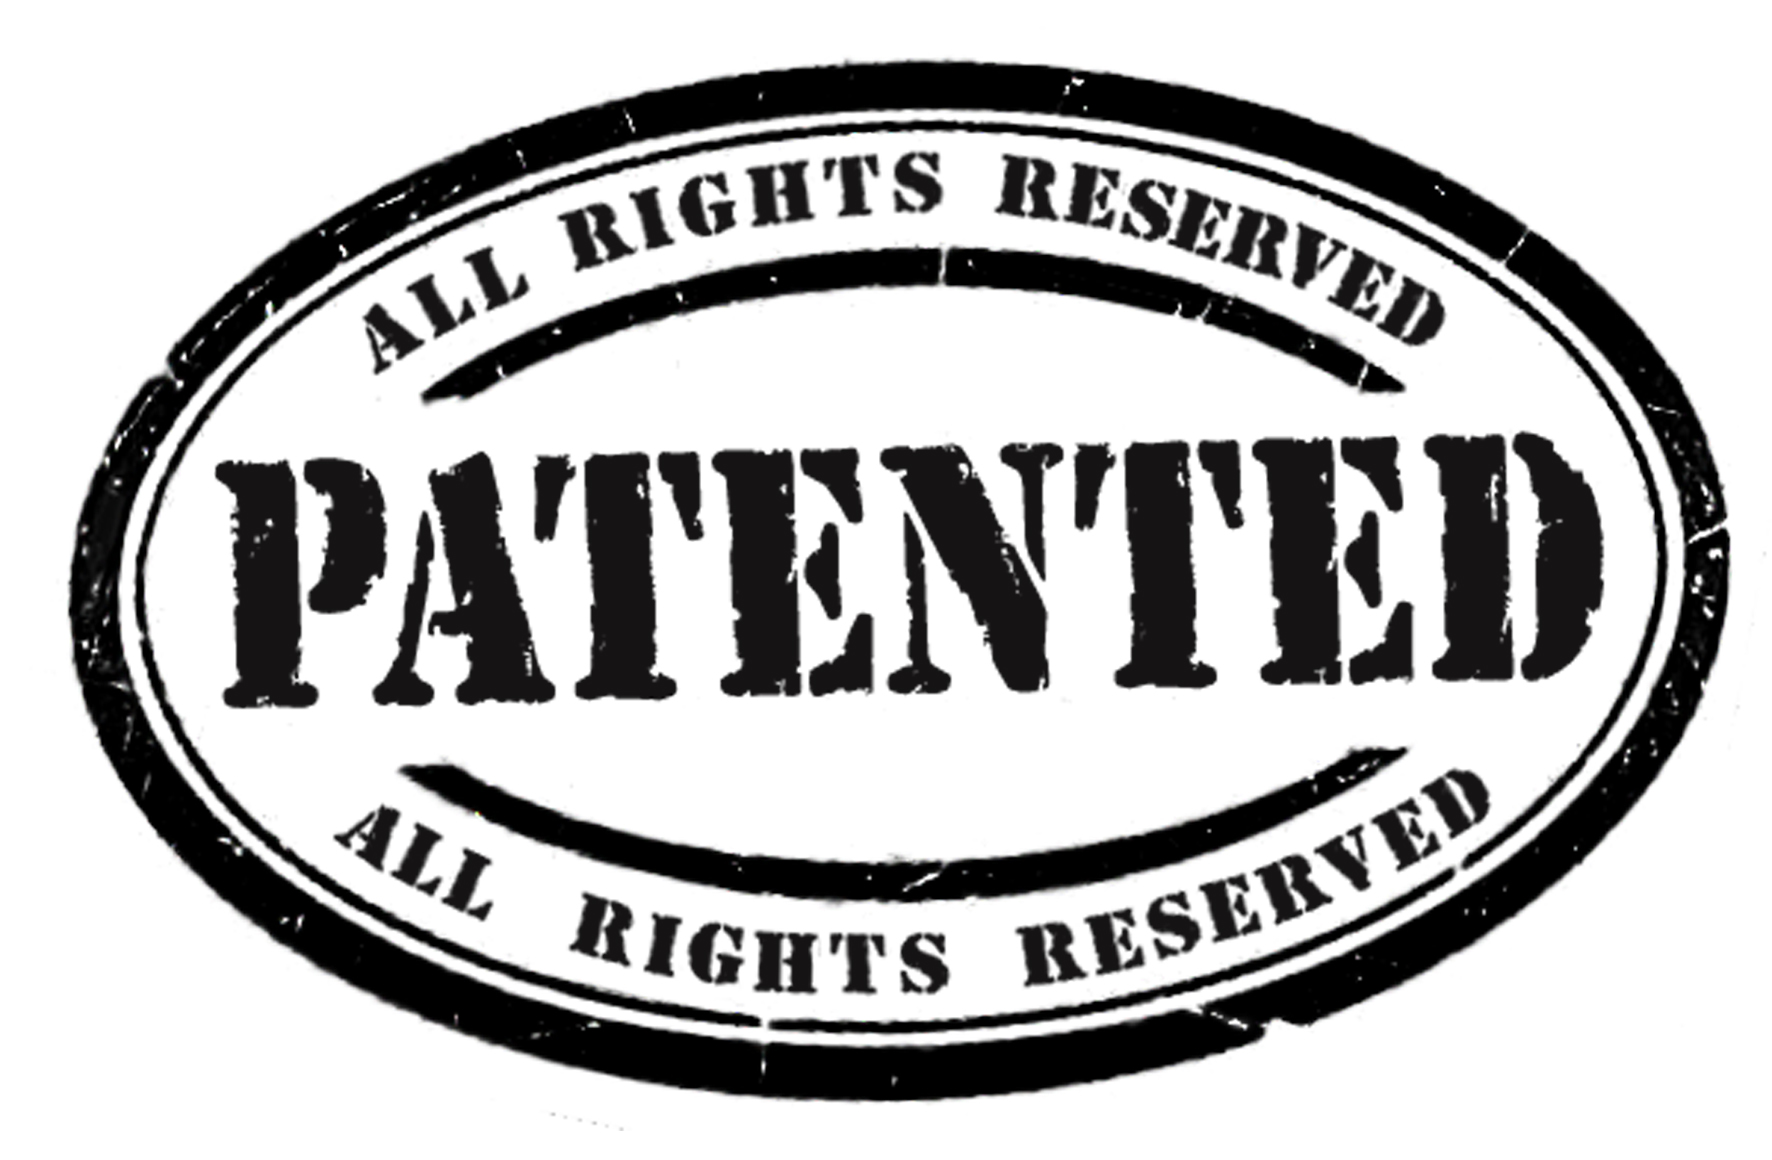 PATENTED ALL RIGHTS RESERVED